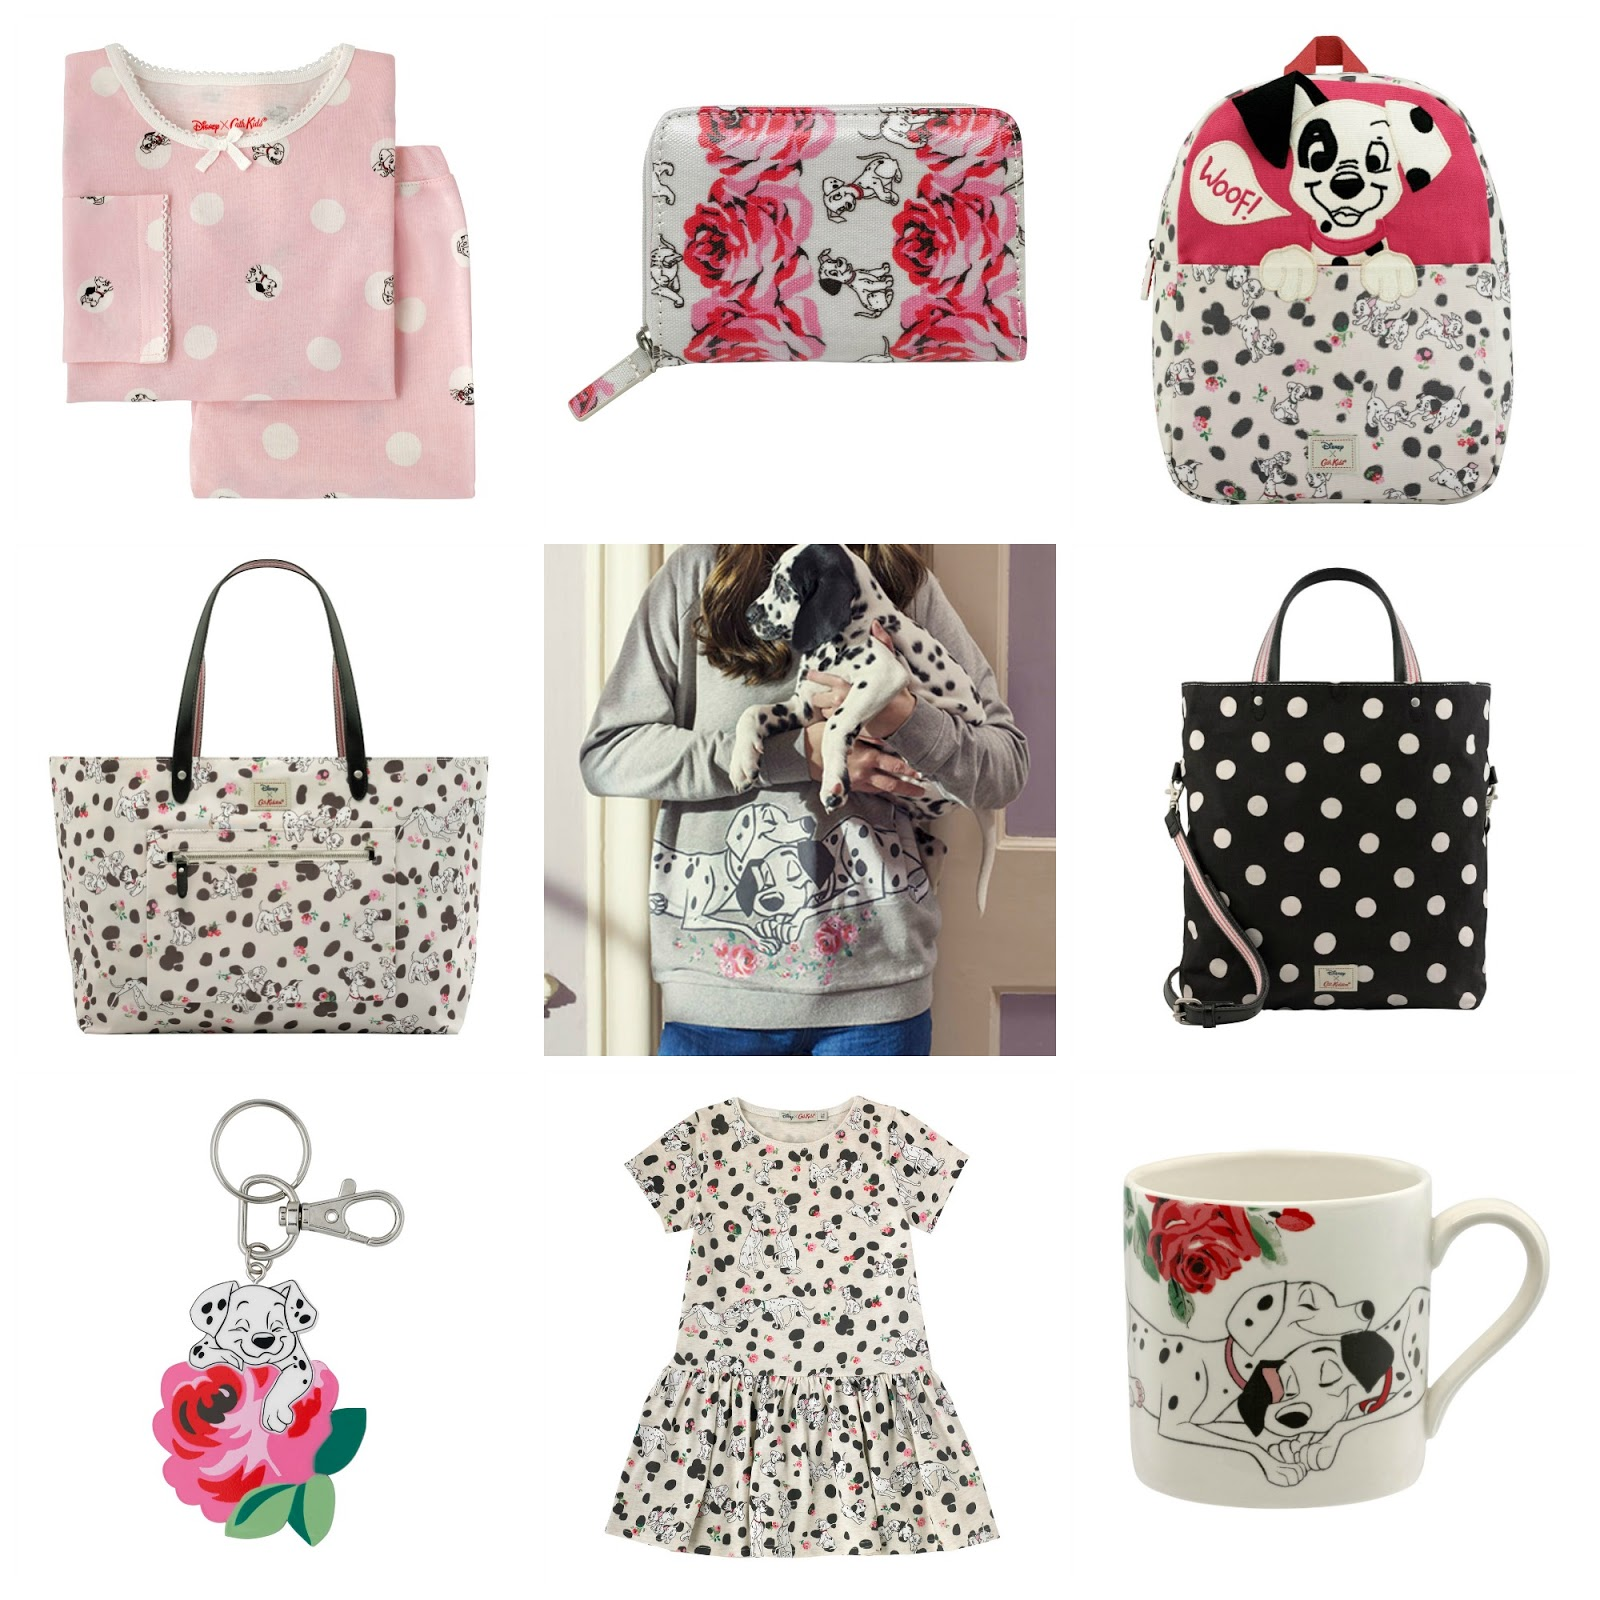 The Cath Kidston x 101 Dalmatians collaboration is the cutest thing you'll see all day